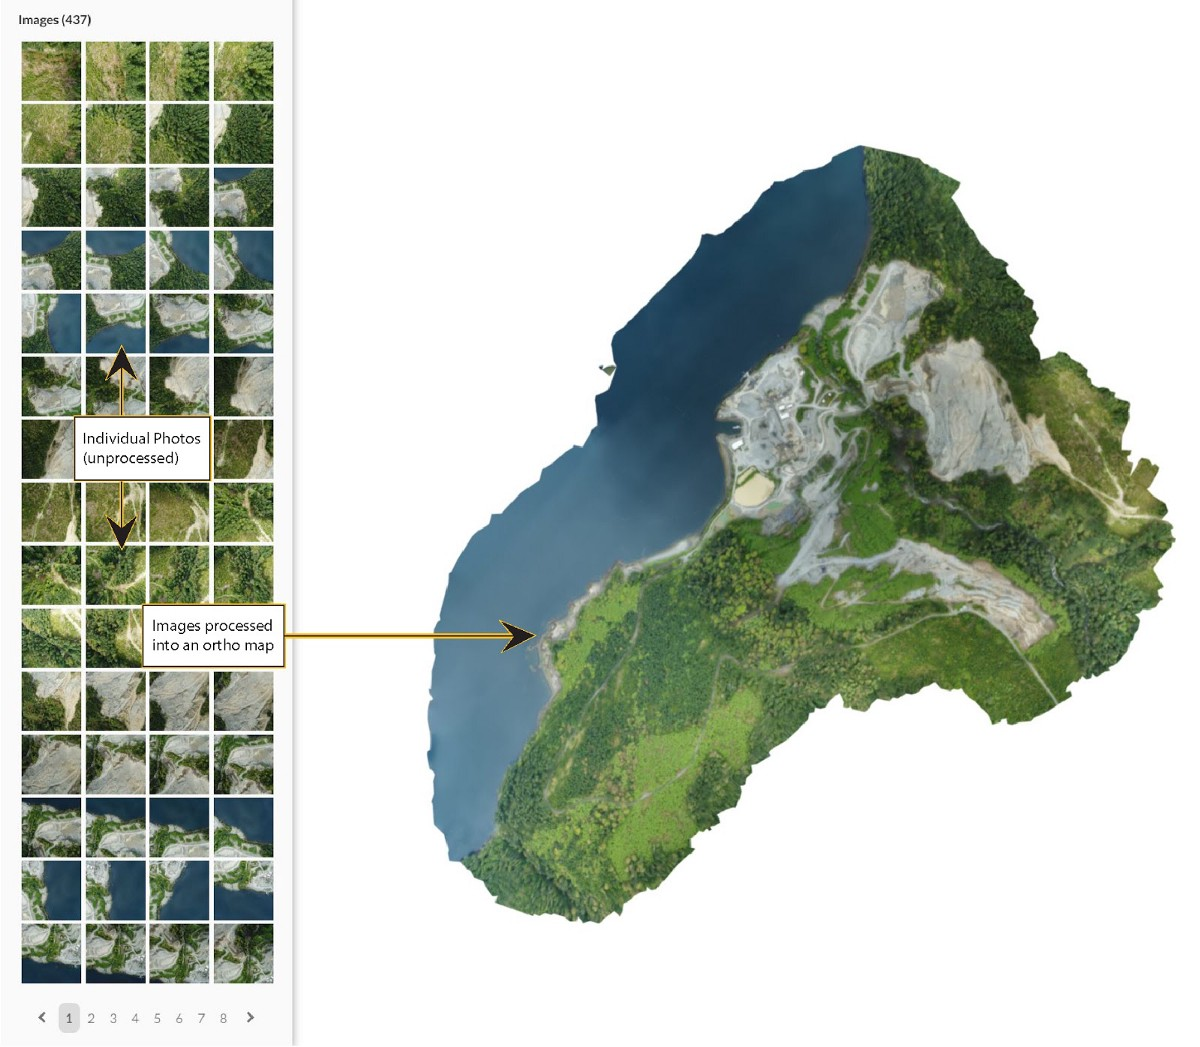 multiple individual drone images when pieced together make an orthomap or an orthomosaic map